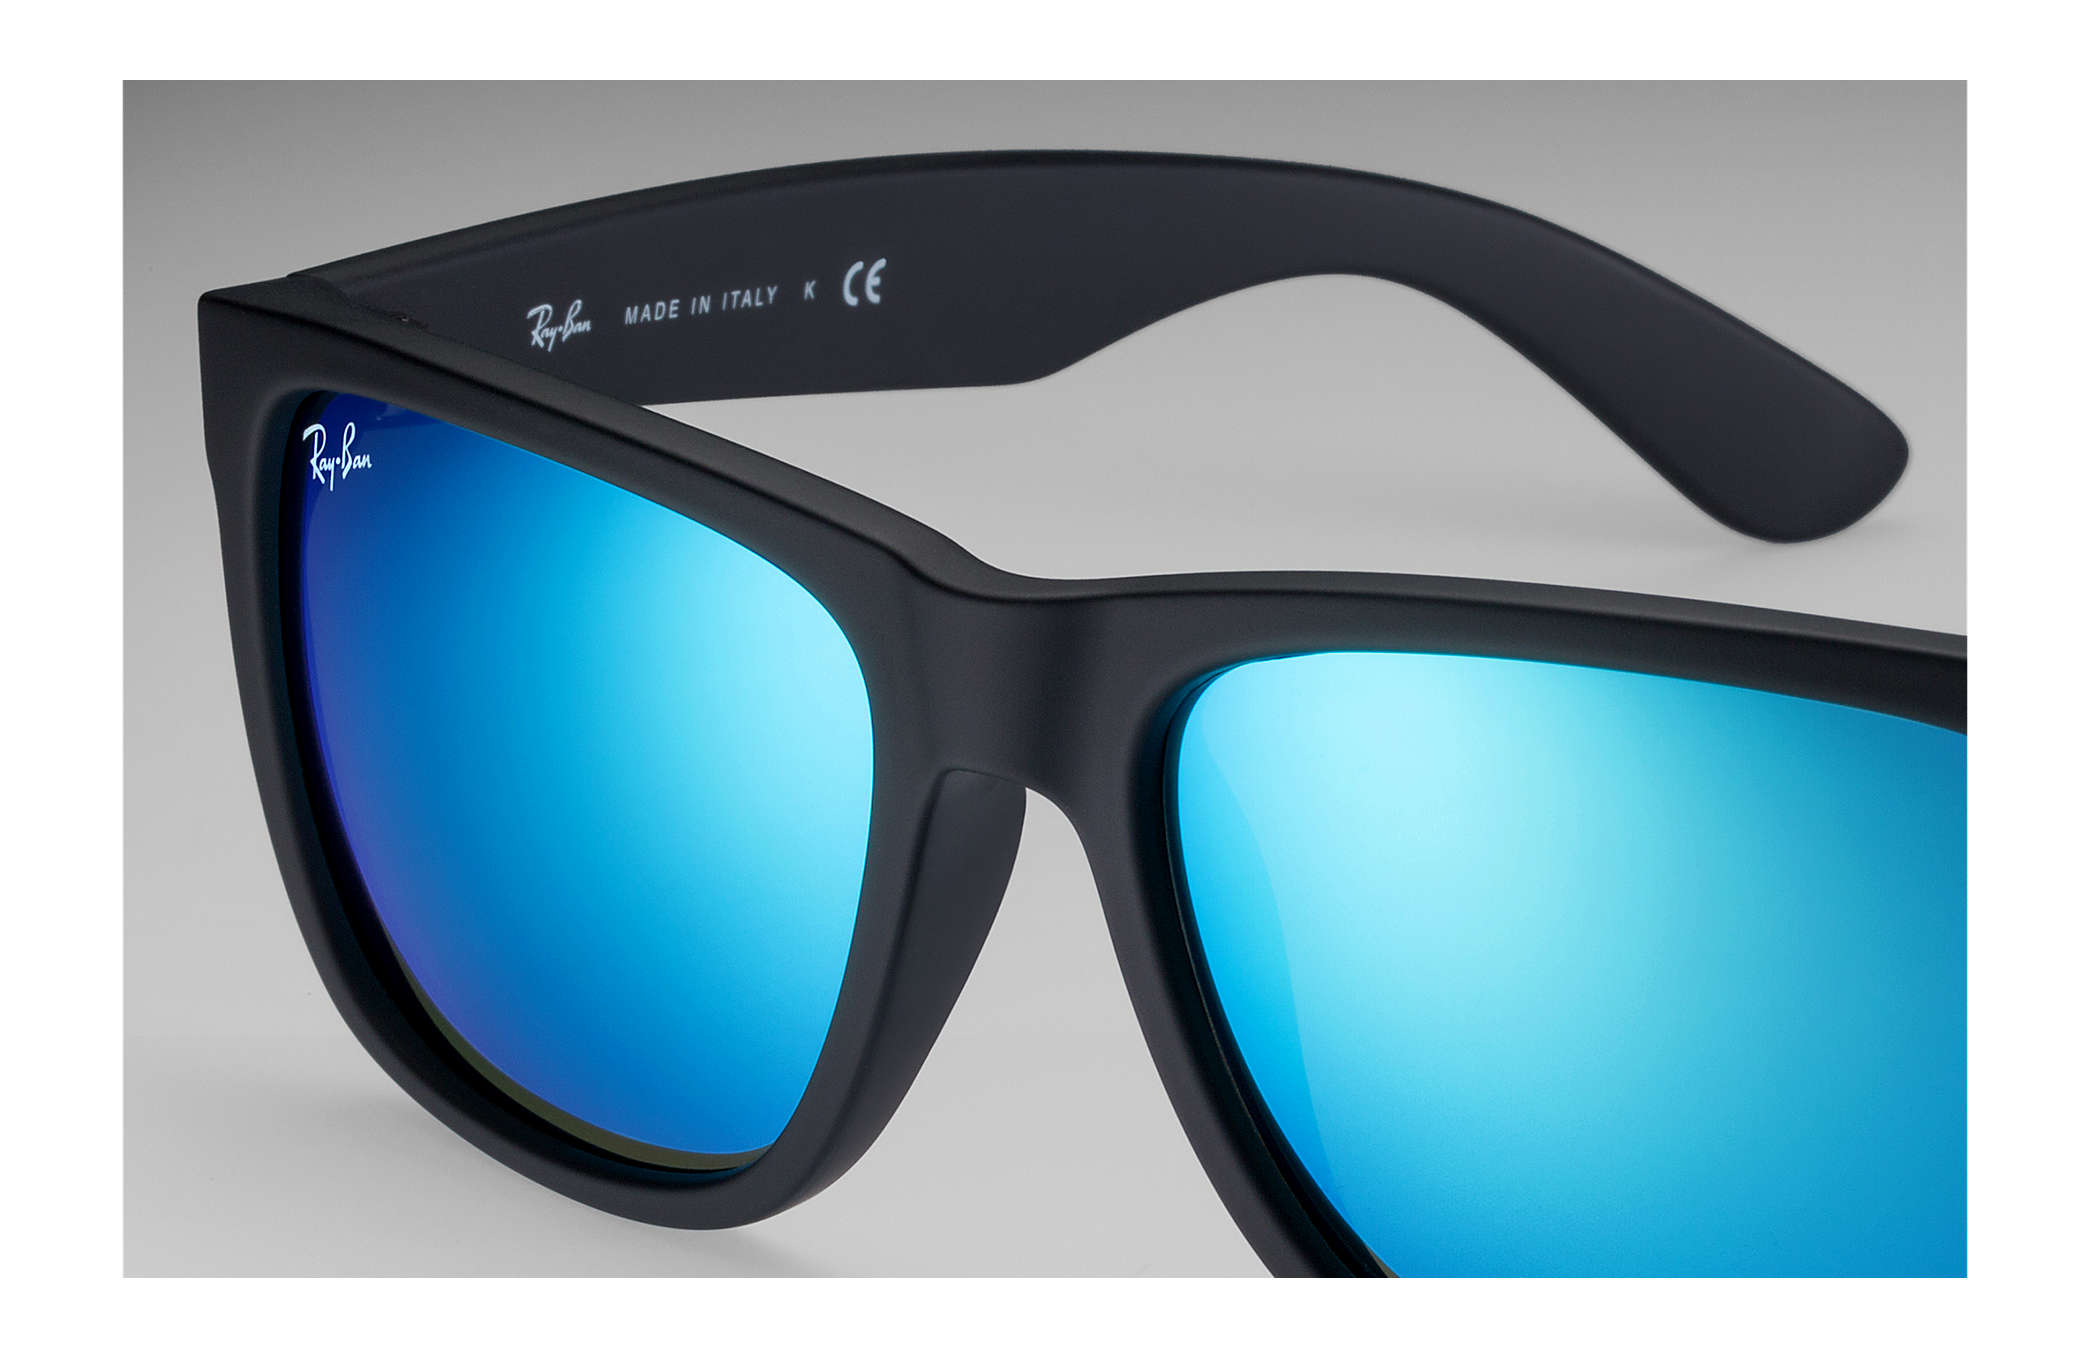 ac6eacafd26778 Ray-Ban Justin Color Mix RB4165 Black - Nylon - Blue Lenses ...